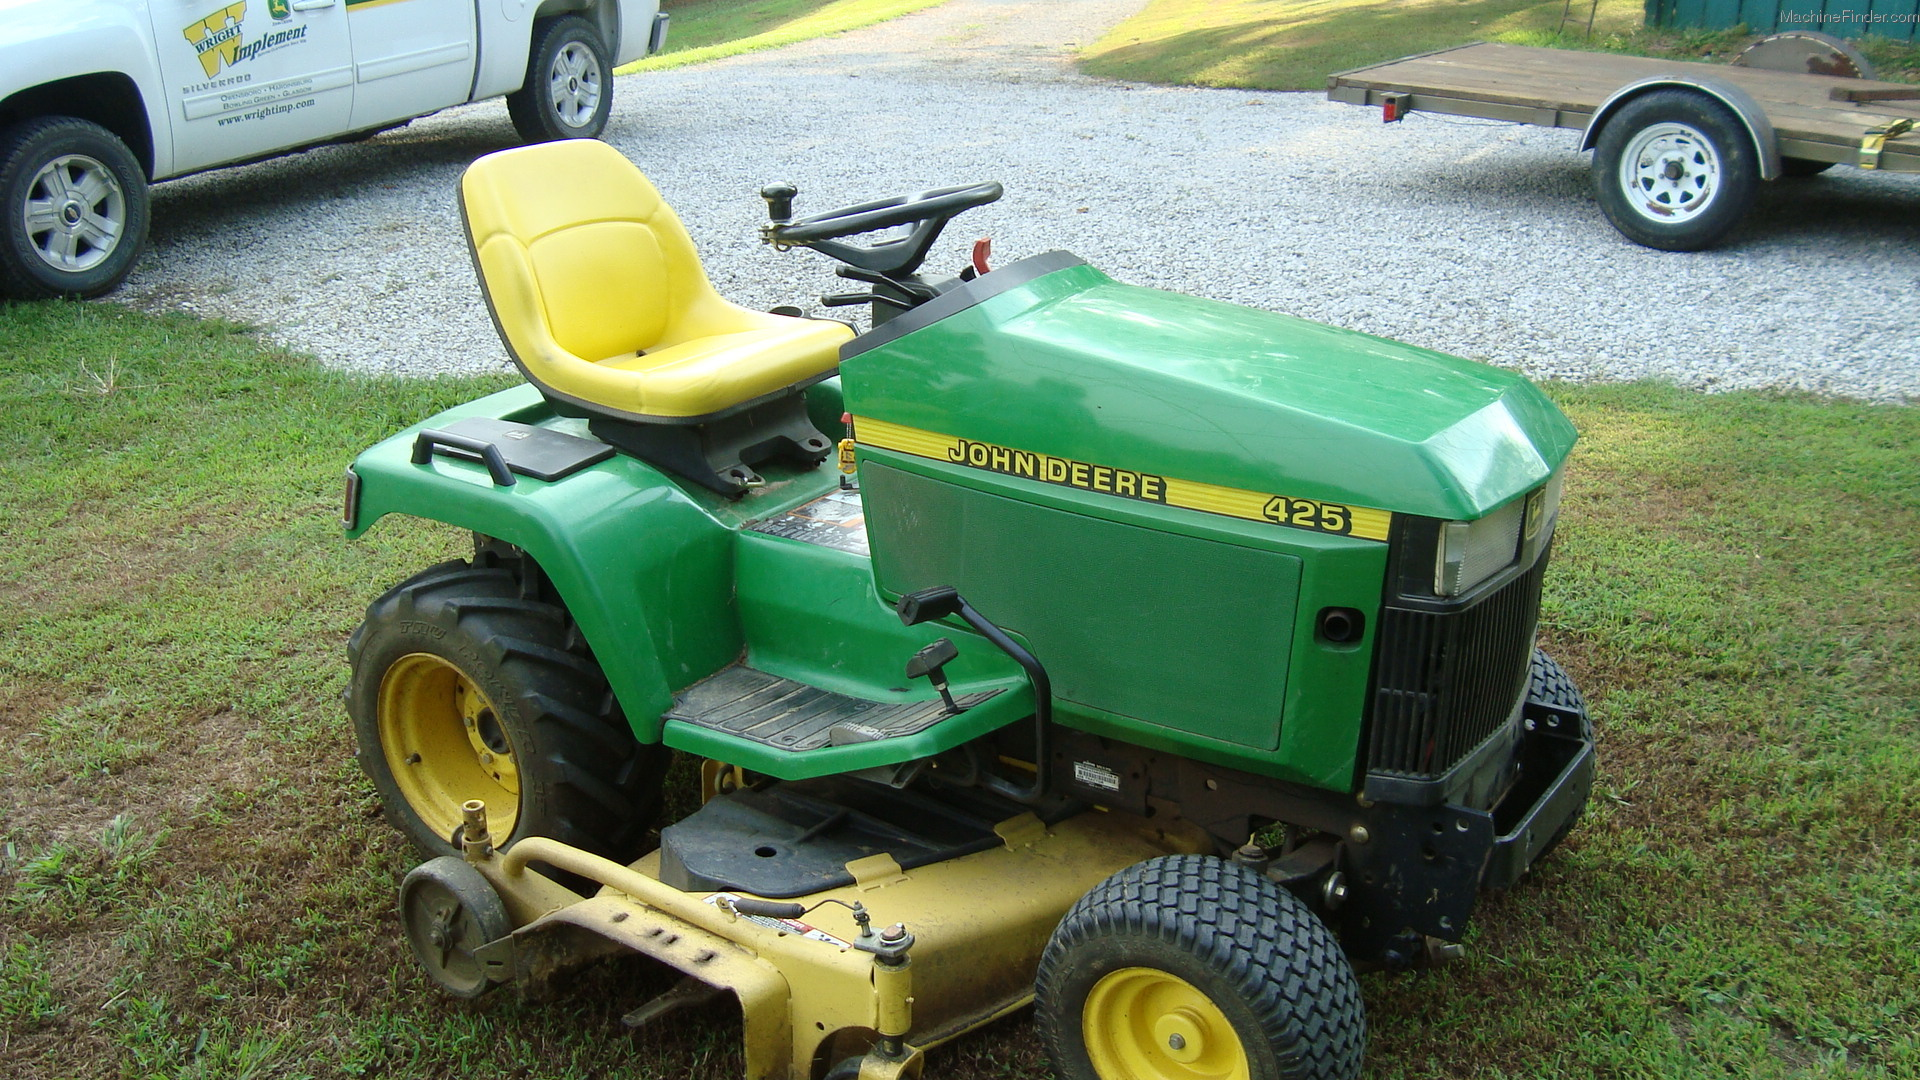 2001 John Deere 425 Lawn & Garden and Commercial Mowing ...